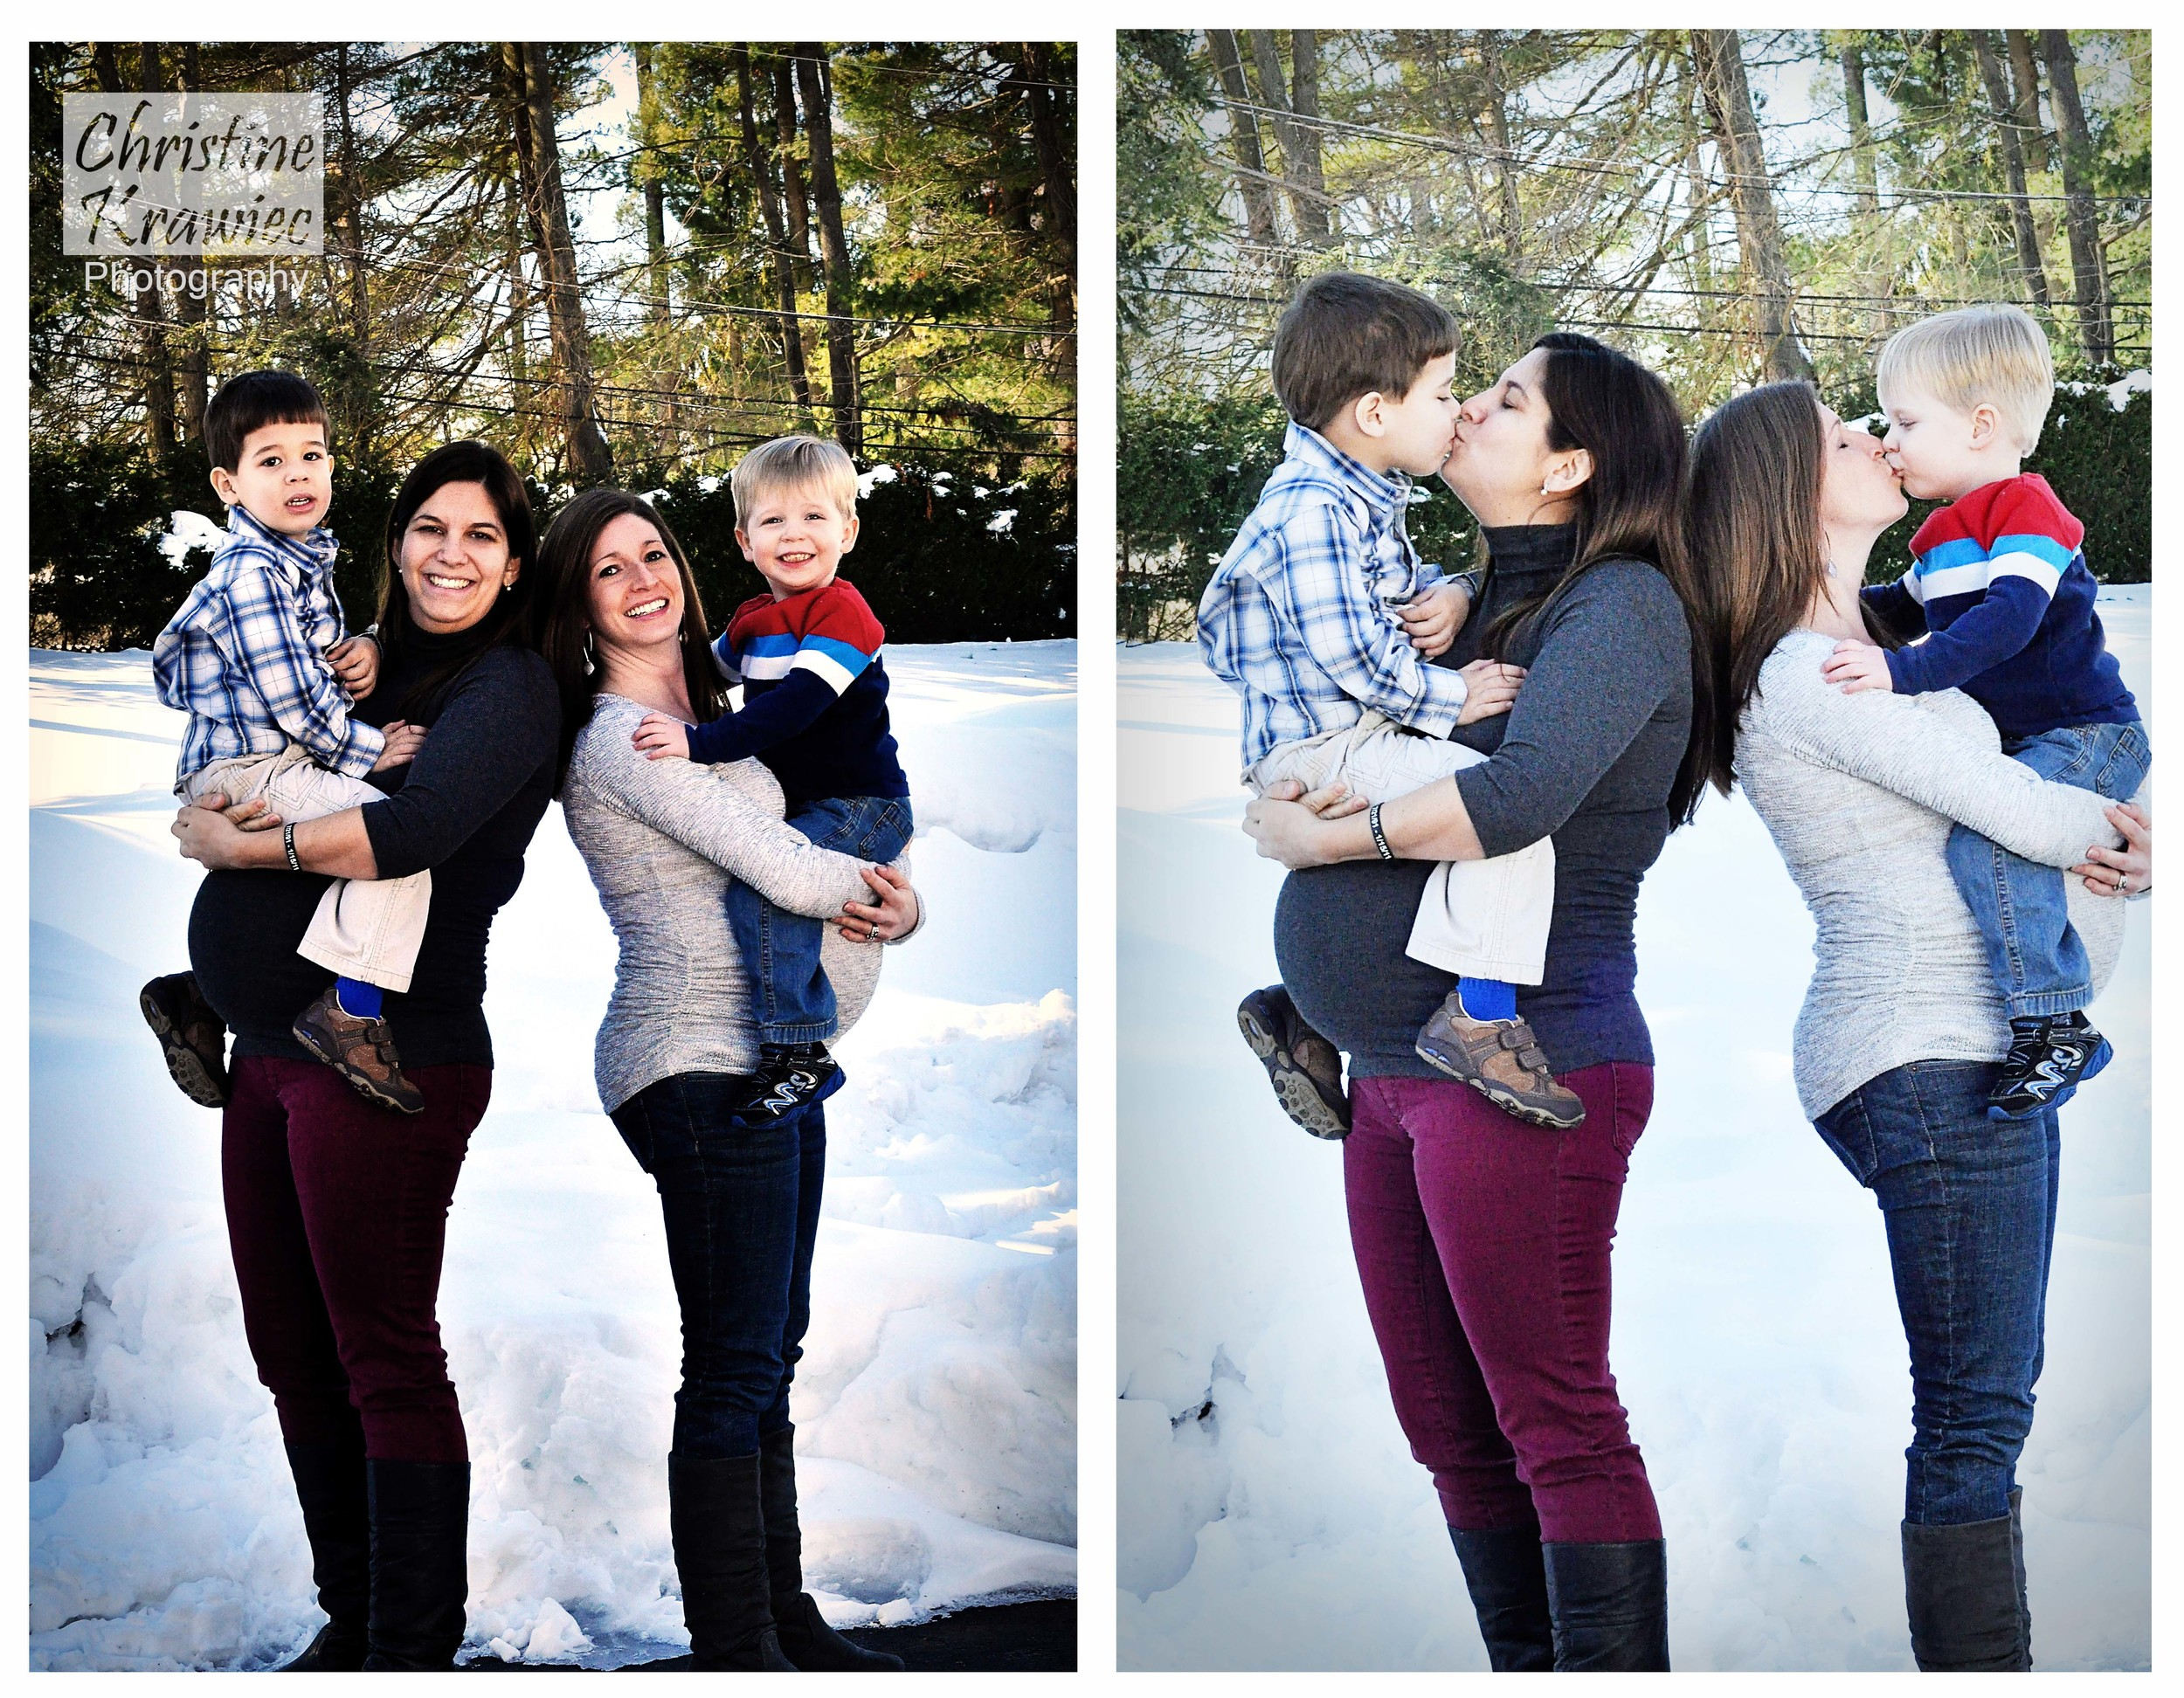 Christine Krawiec Photography - Broomall Maternity Photographer